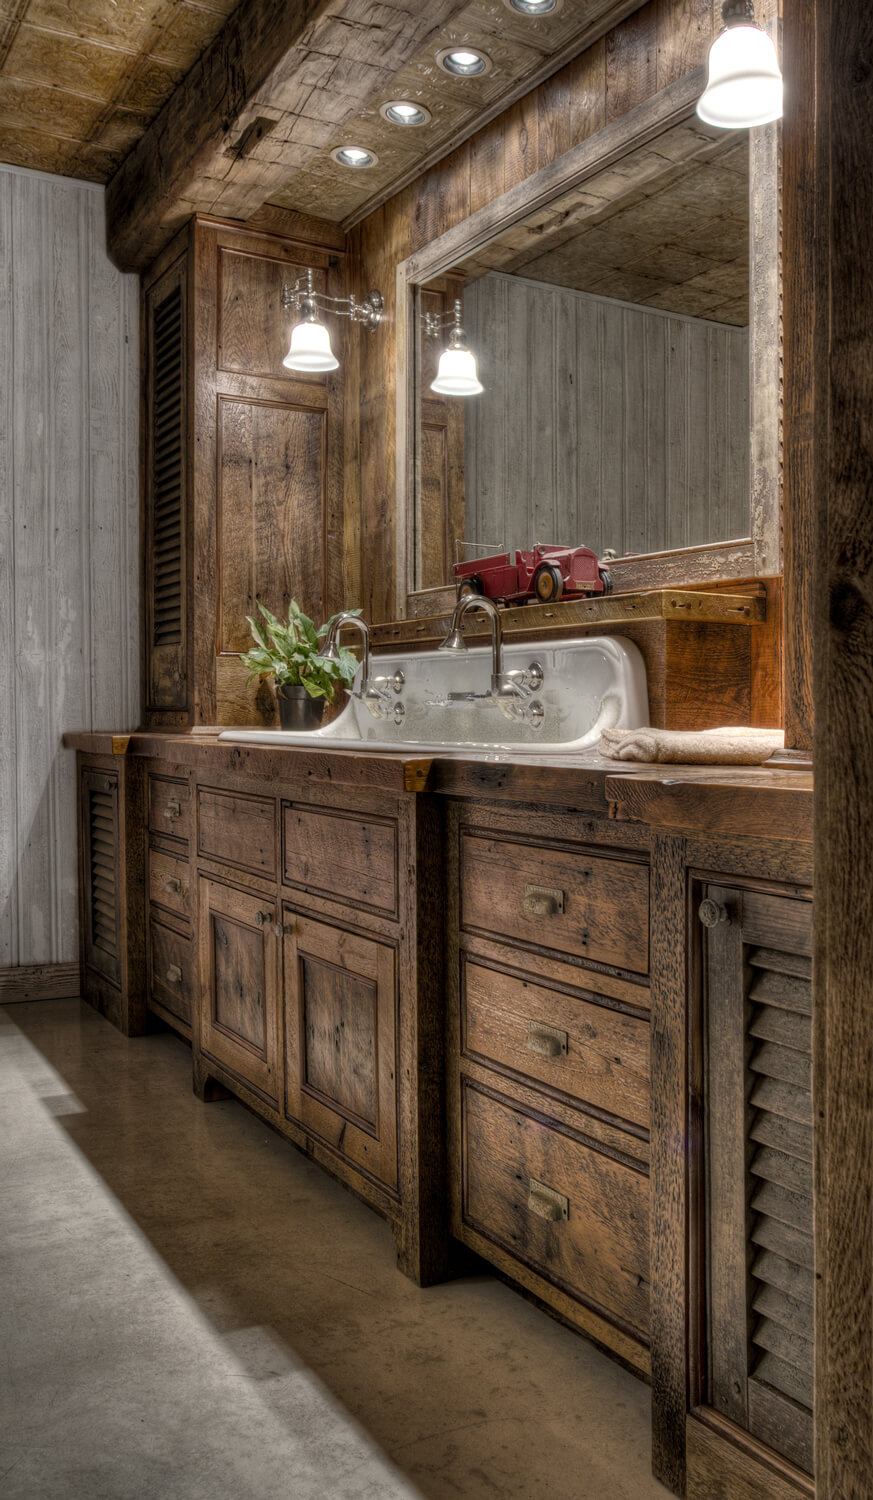 Rustic Bathroom Vanity Idea with Dark Wood